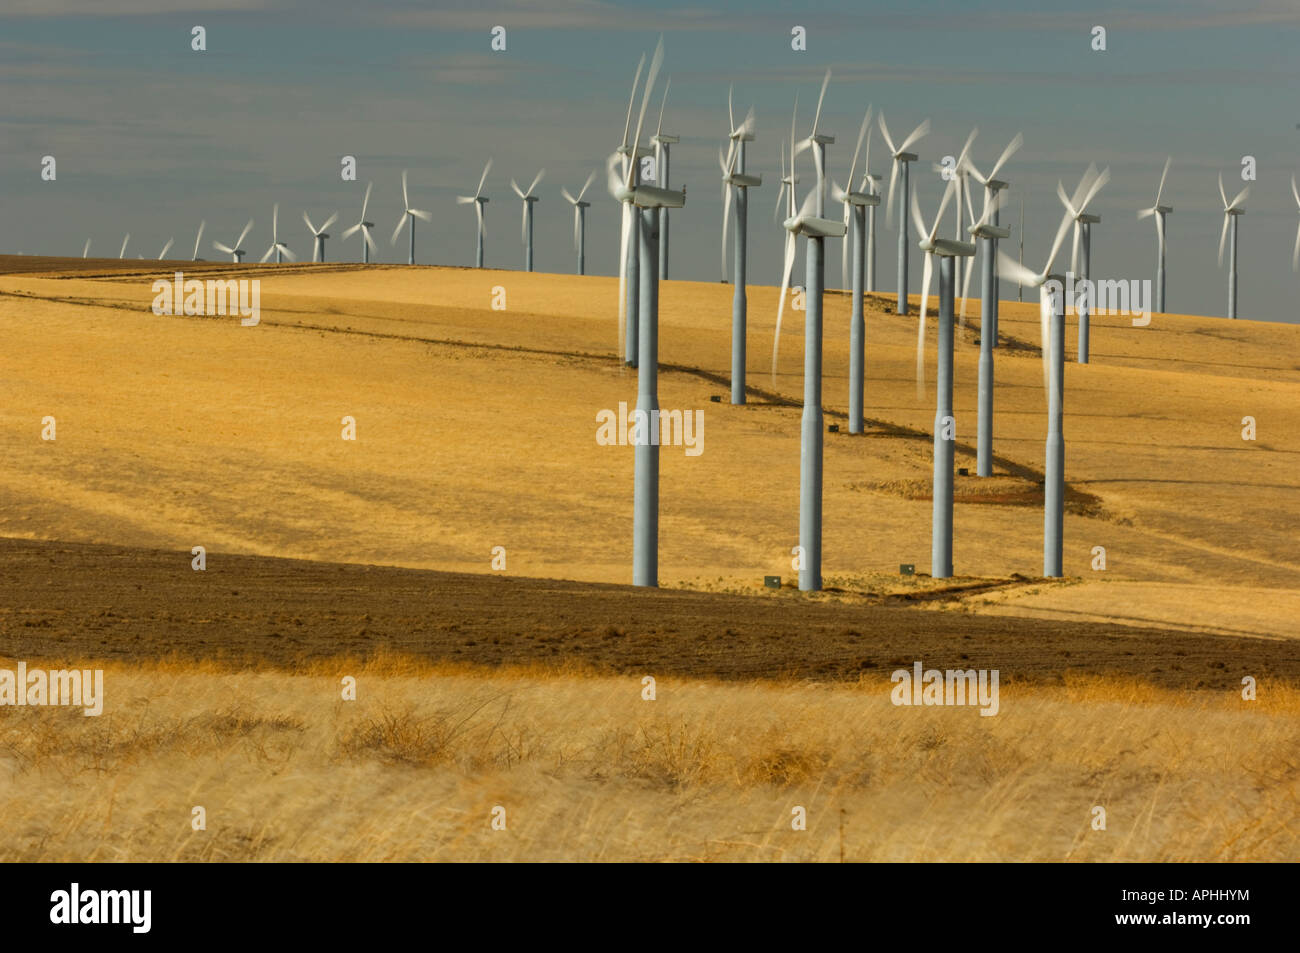 Lines of wind turbines with their propellers spinning follow the contours of rolling hills in southeastern Washington - Stock Image